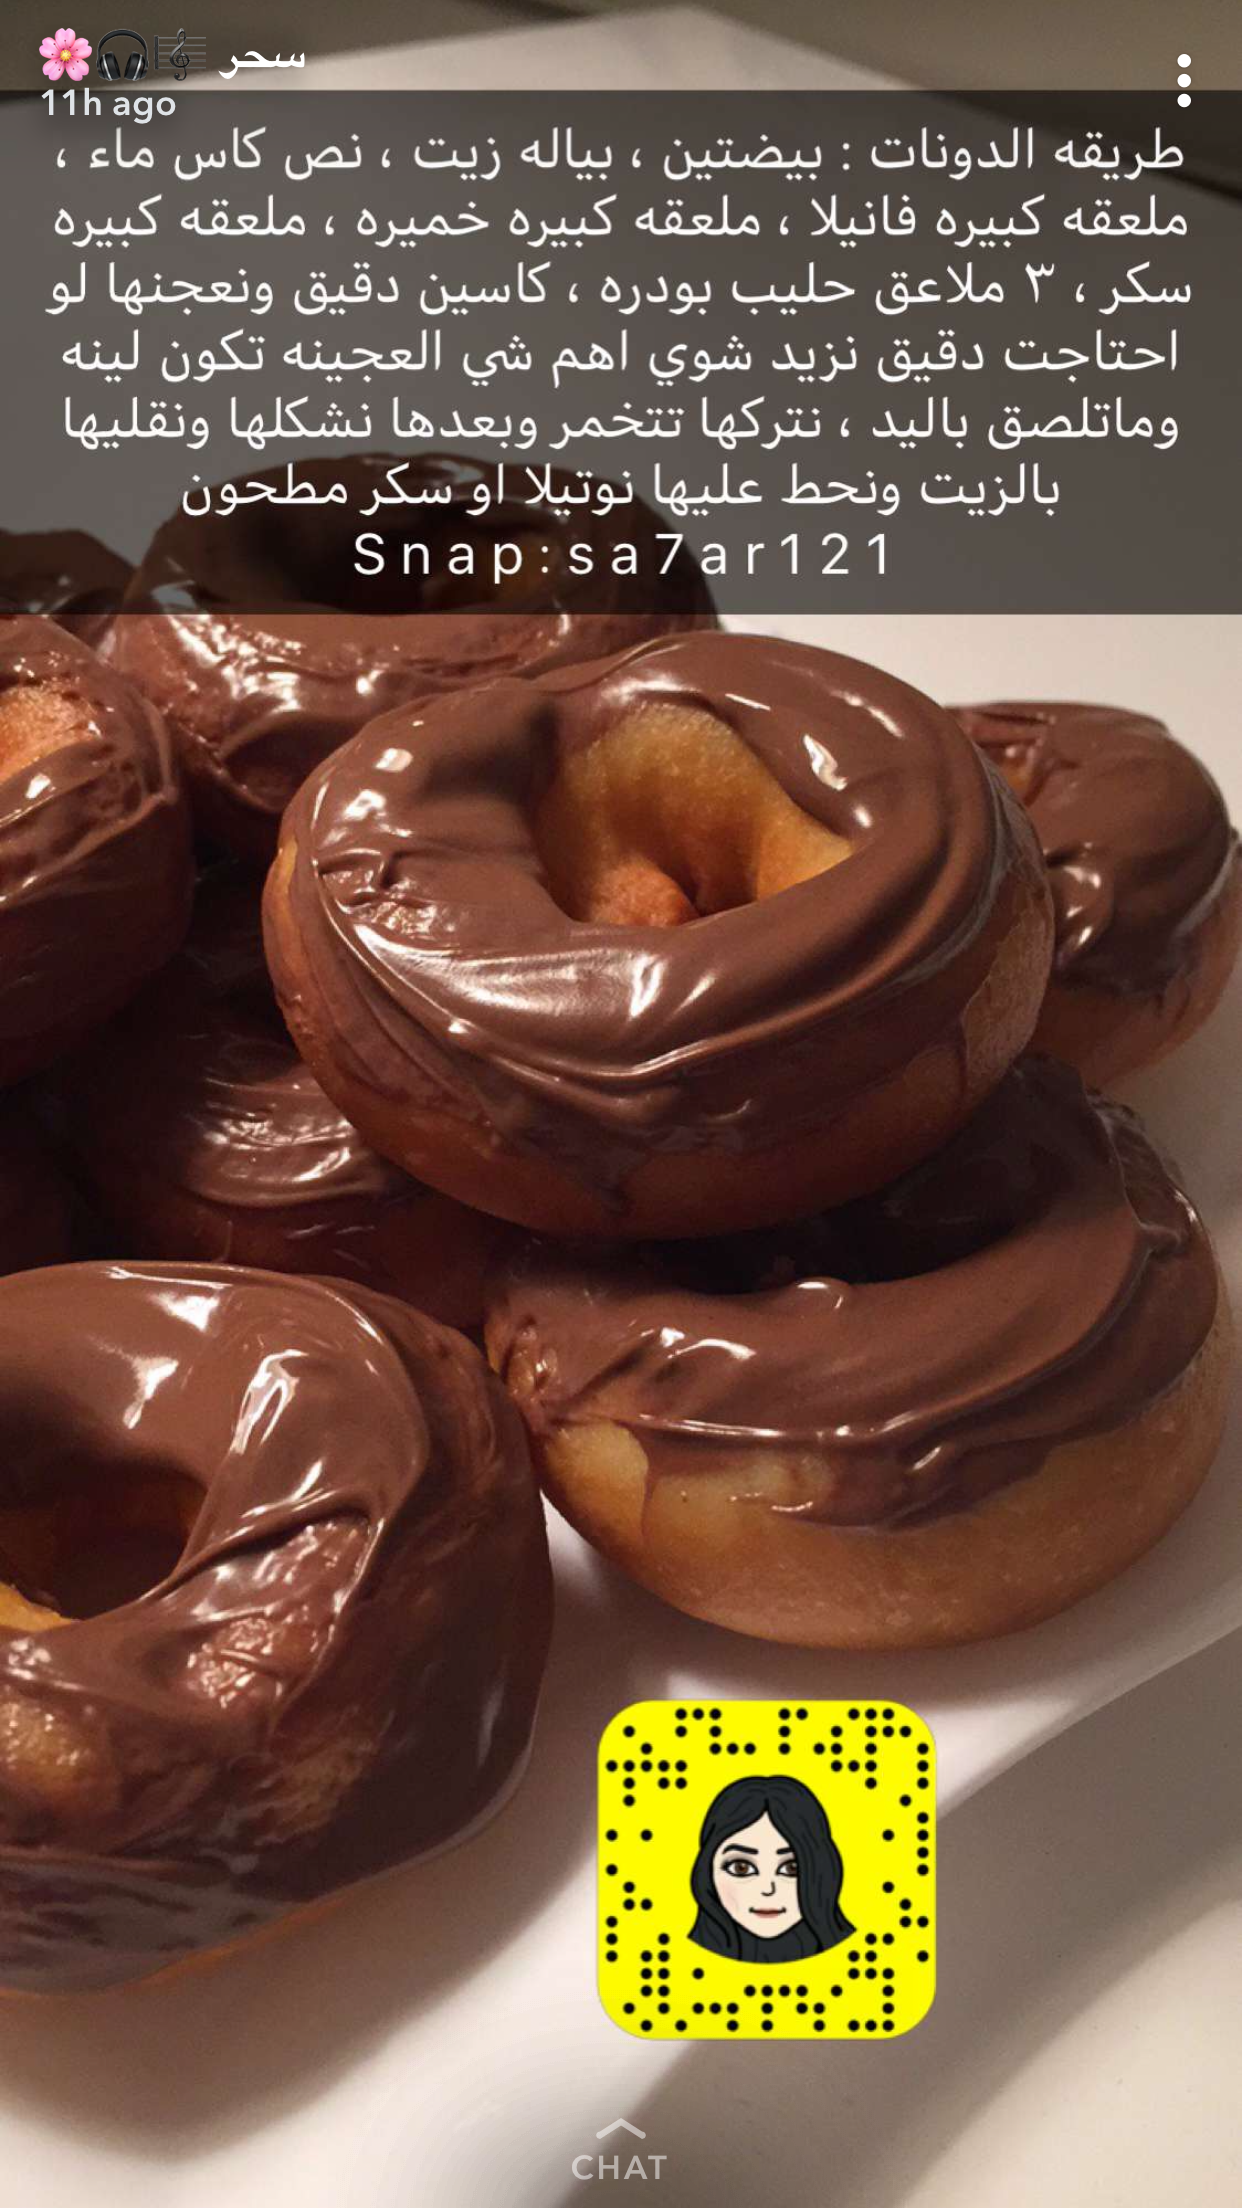 Pin By Alaa Elshishtawi On Foods Food Drinks Dessert Cooking Recipes Desserts Sweets Recipes